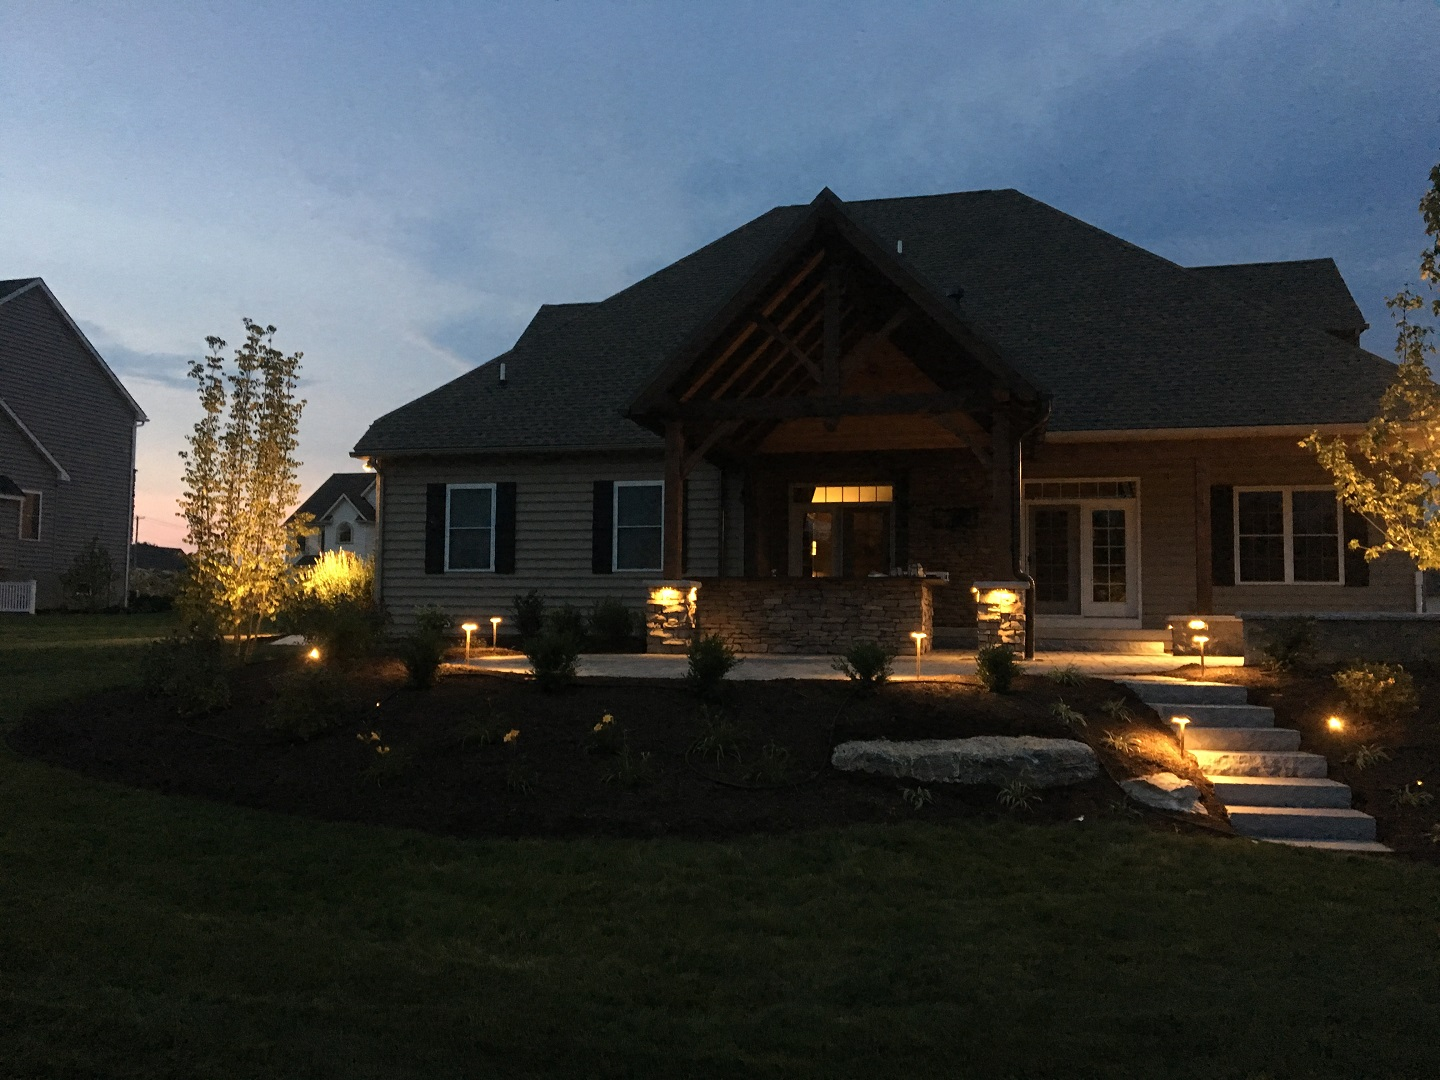 Top outdoor LED lighting in Lititz, PA